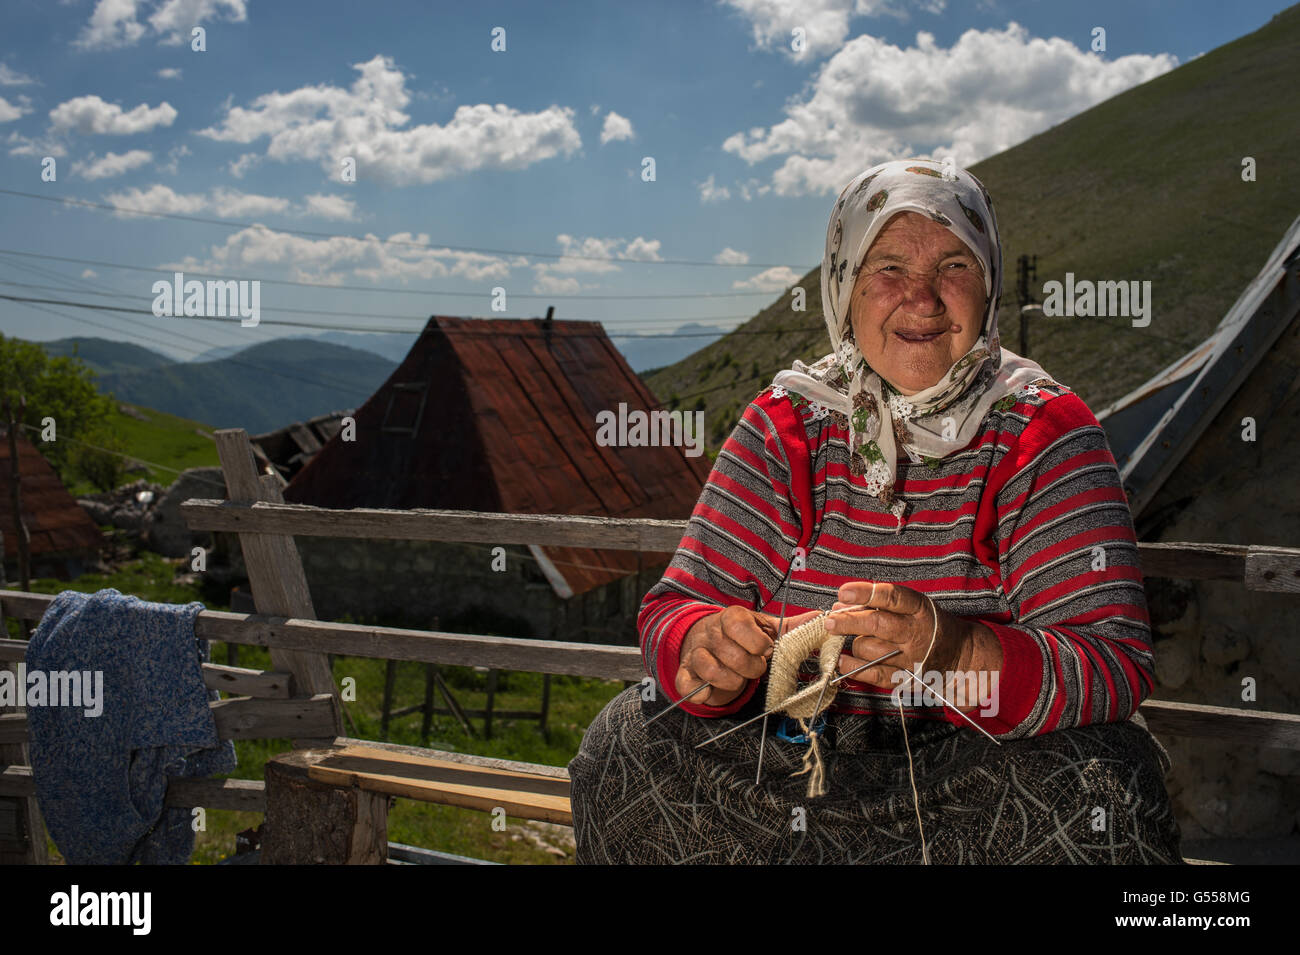 An old woman by Lukomir, the most remote and higher village of Bosnia-Erzegovina  Europe, prepare typycal wool socks. - Stock Image